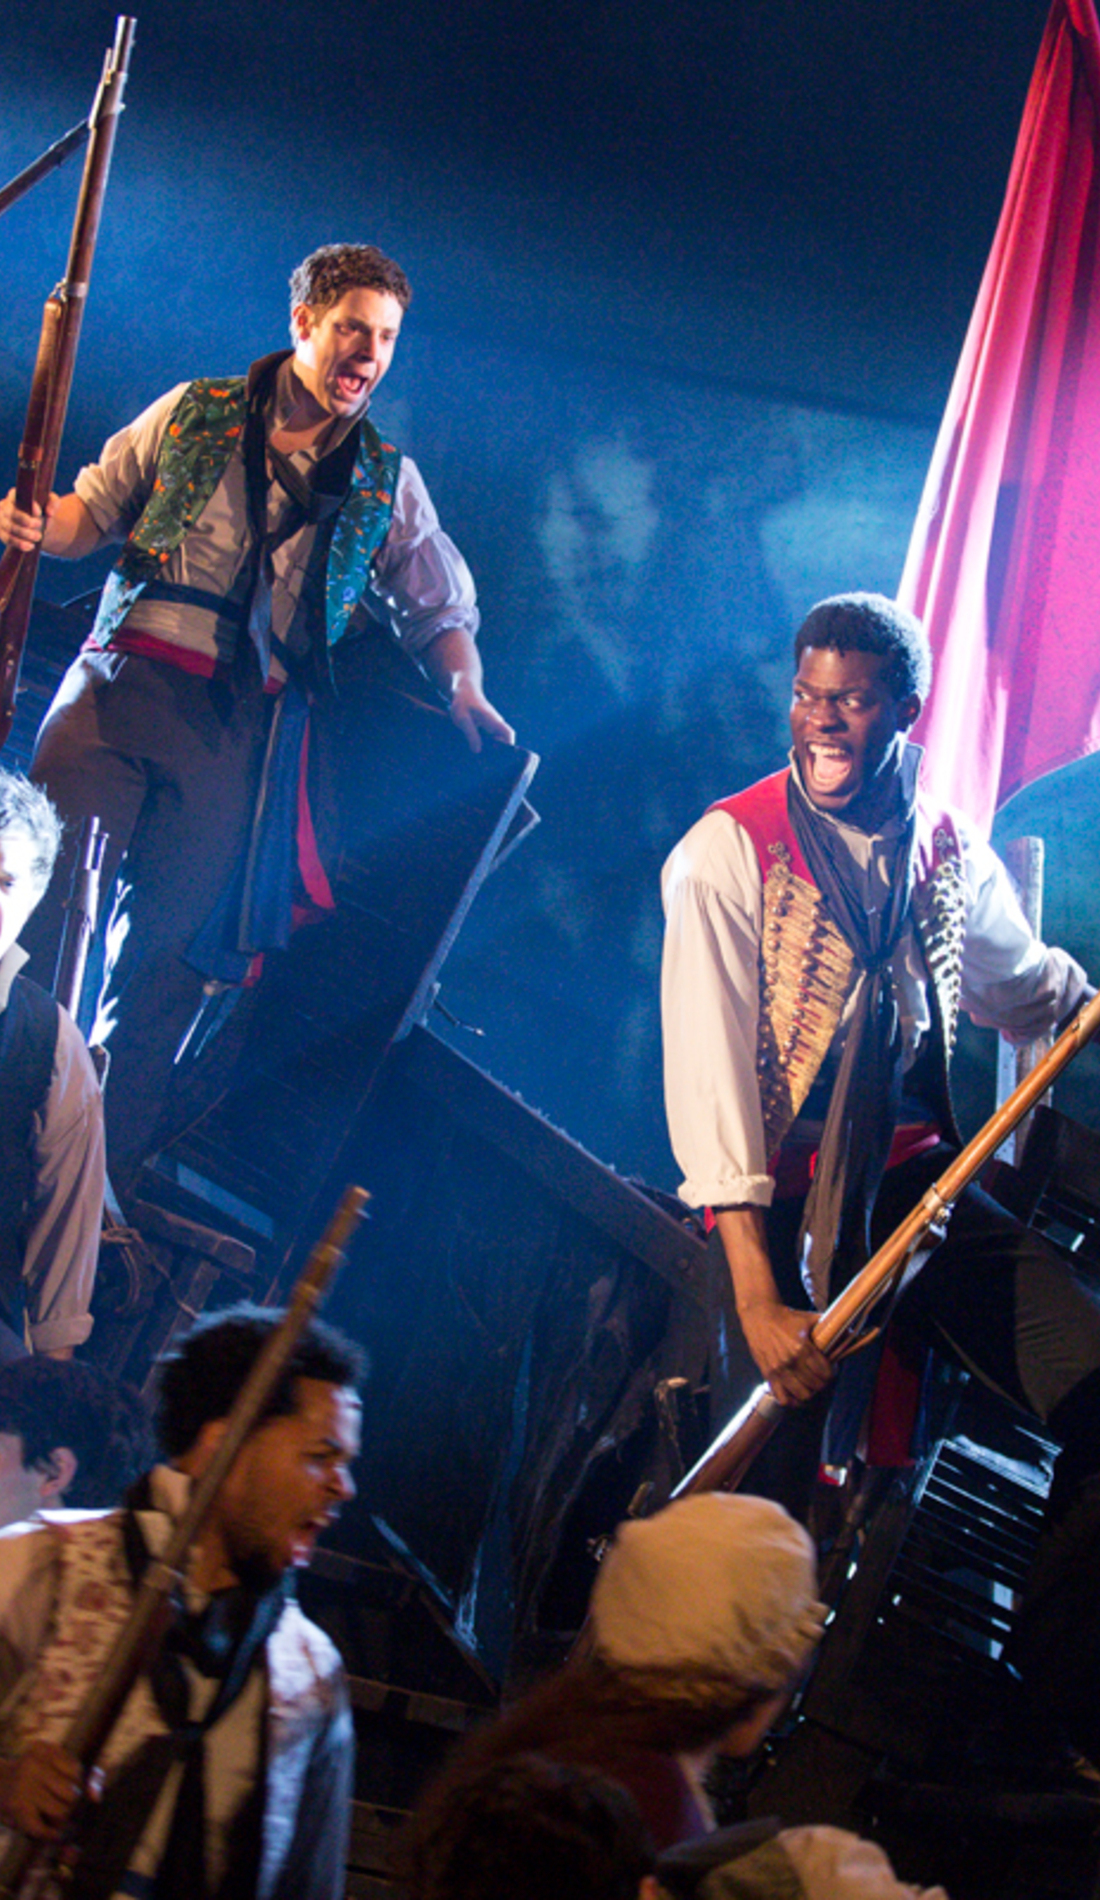 A Les Miserables live event